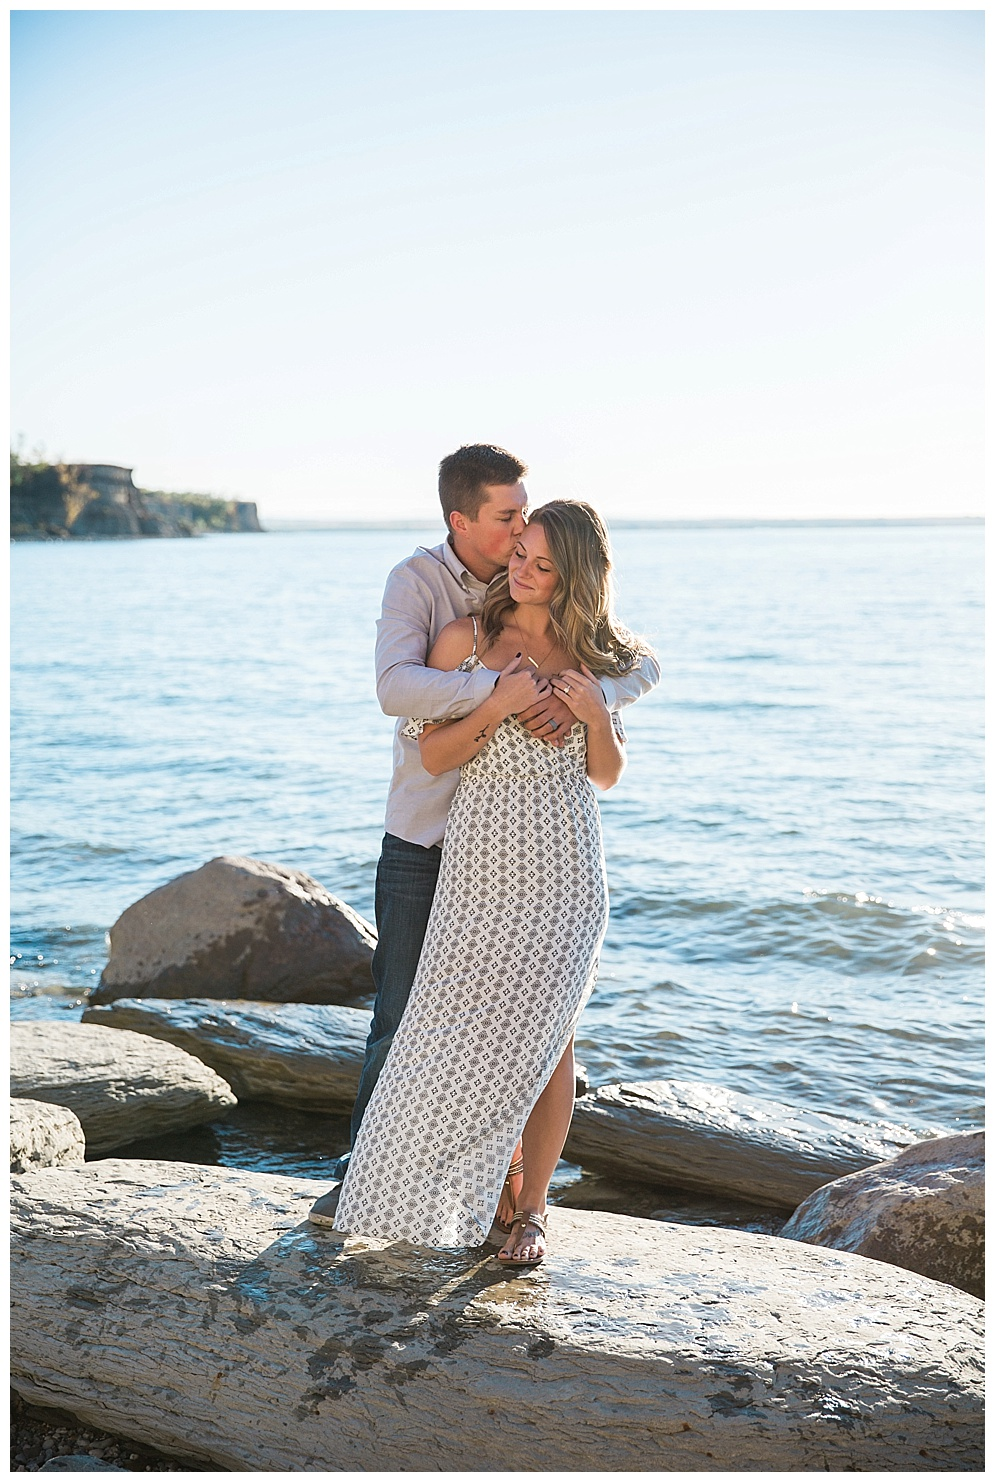 """On August 15th, 2015 I had the privilege of photographing Ashley & Logan as they said """"I Do."""" A year later, I joined them on the beaches of Lake Sakakawea to celebrate their anniversary! These two hold a special place in my heart. Logan is a longtime friend and softball teammate to my husband Tyson and over the years I have been lucky enough to build a friendship with both of them. They are one of our go-to couples for fun nights out and good laughs! I enjoy watching their relationship grow and can't wait to see where they are in another year!"""